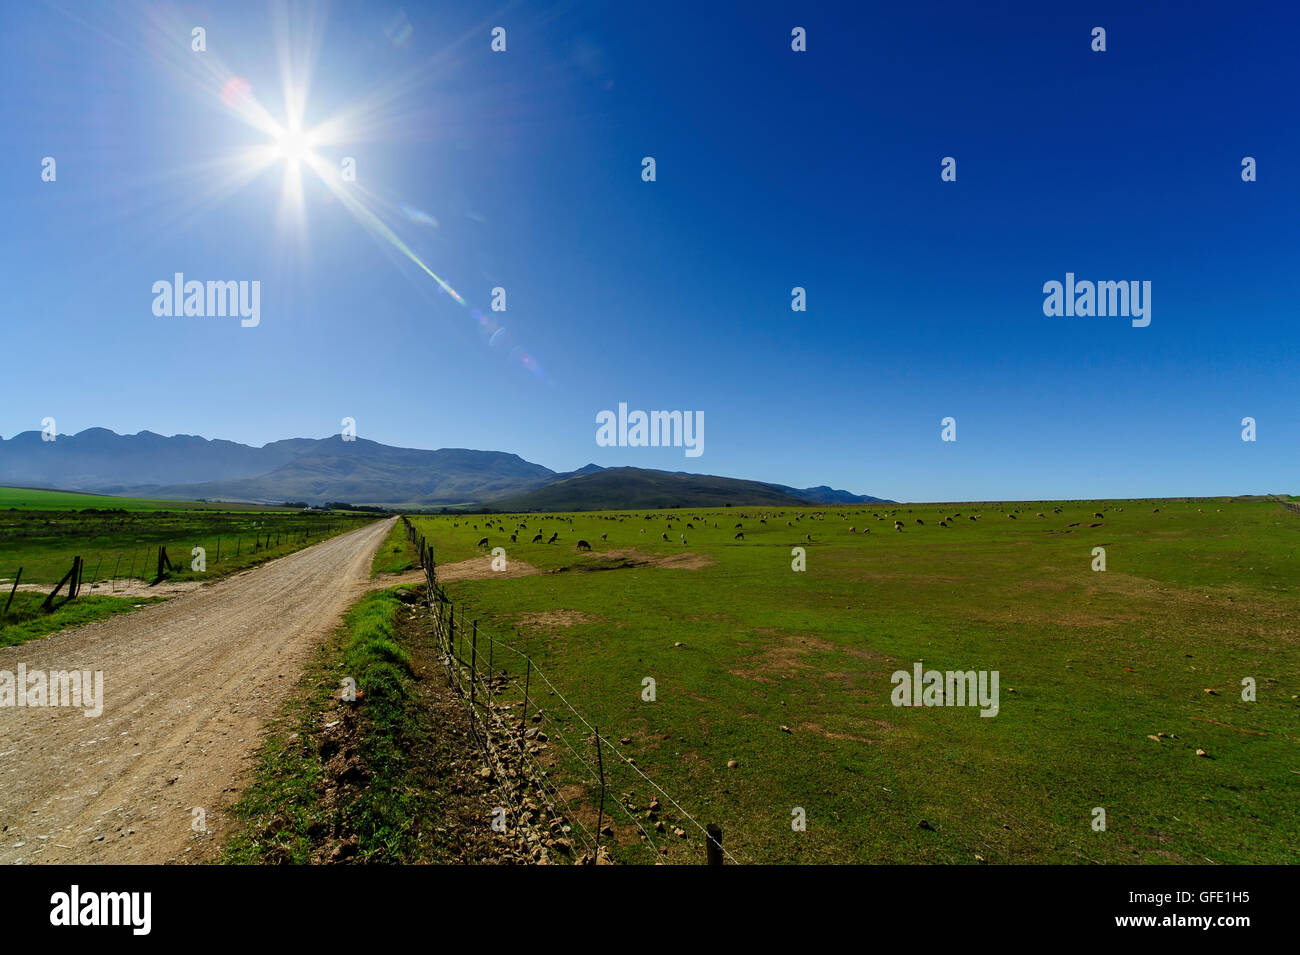 Group of  Sheep in contre-jour, Calendon, South Africa Stock Photo